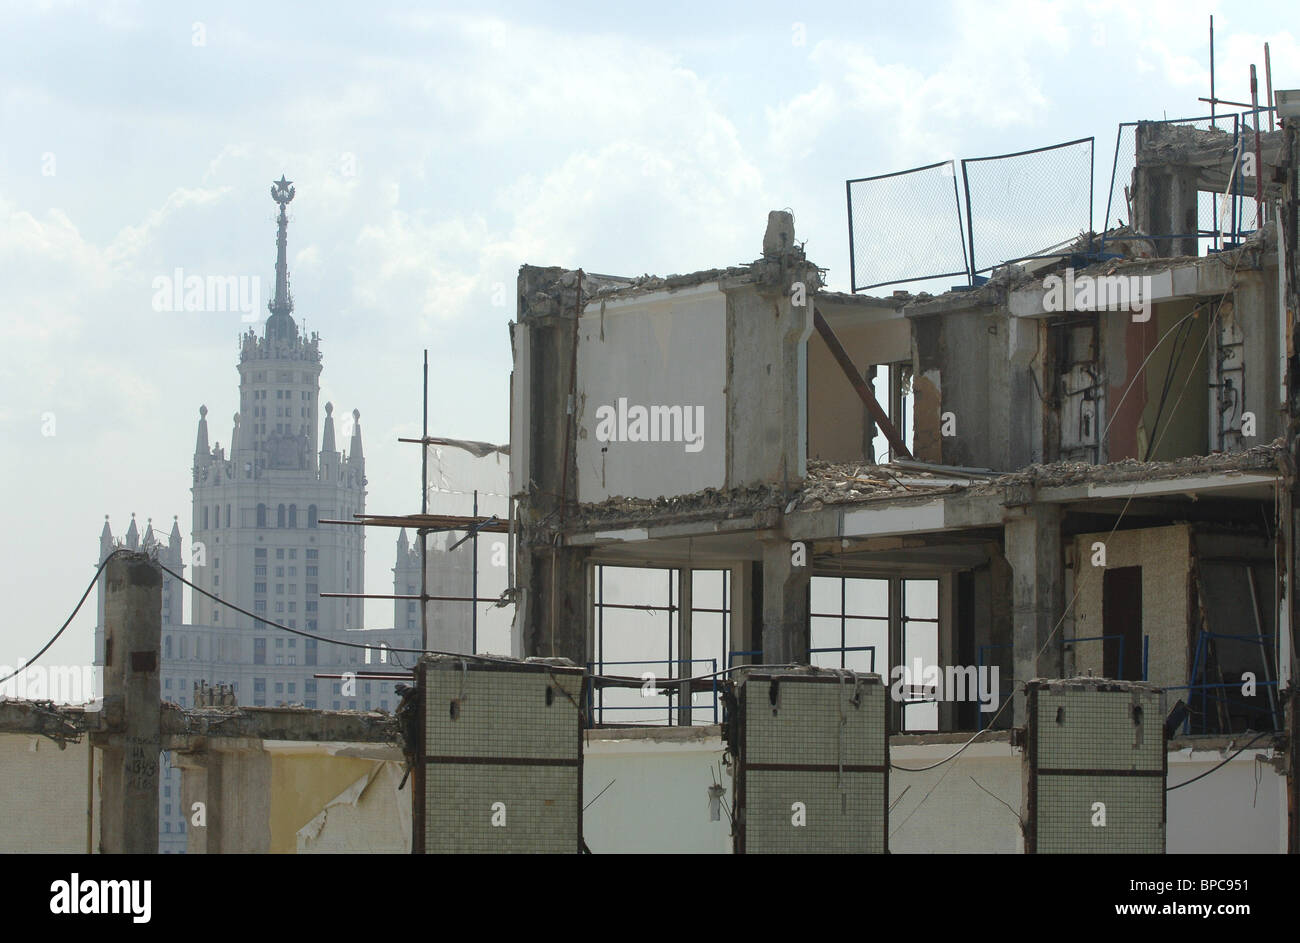 Rossiya Hotel being dismantled in Moscow - Stock Image